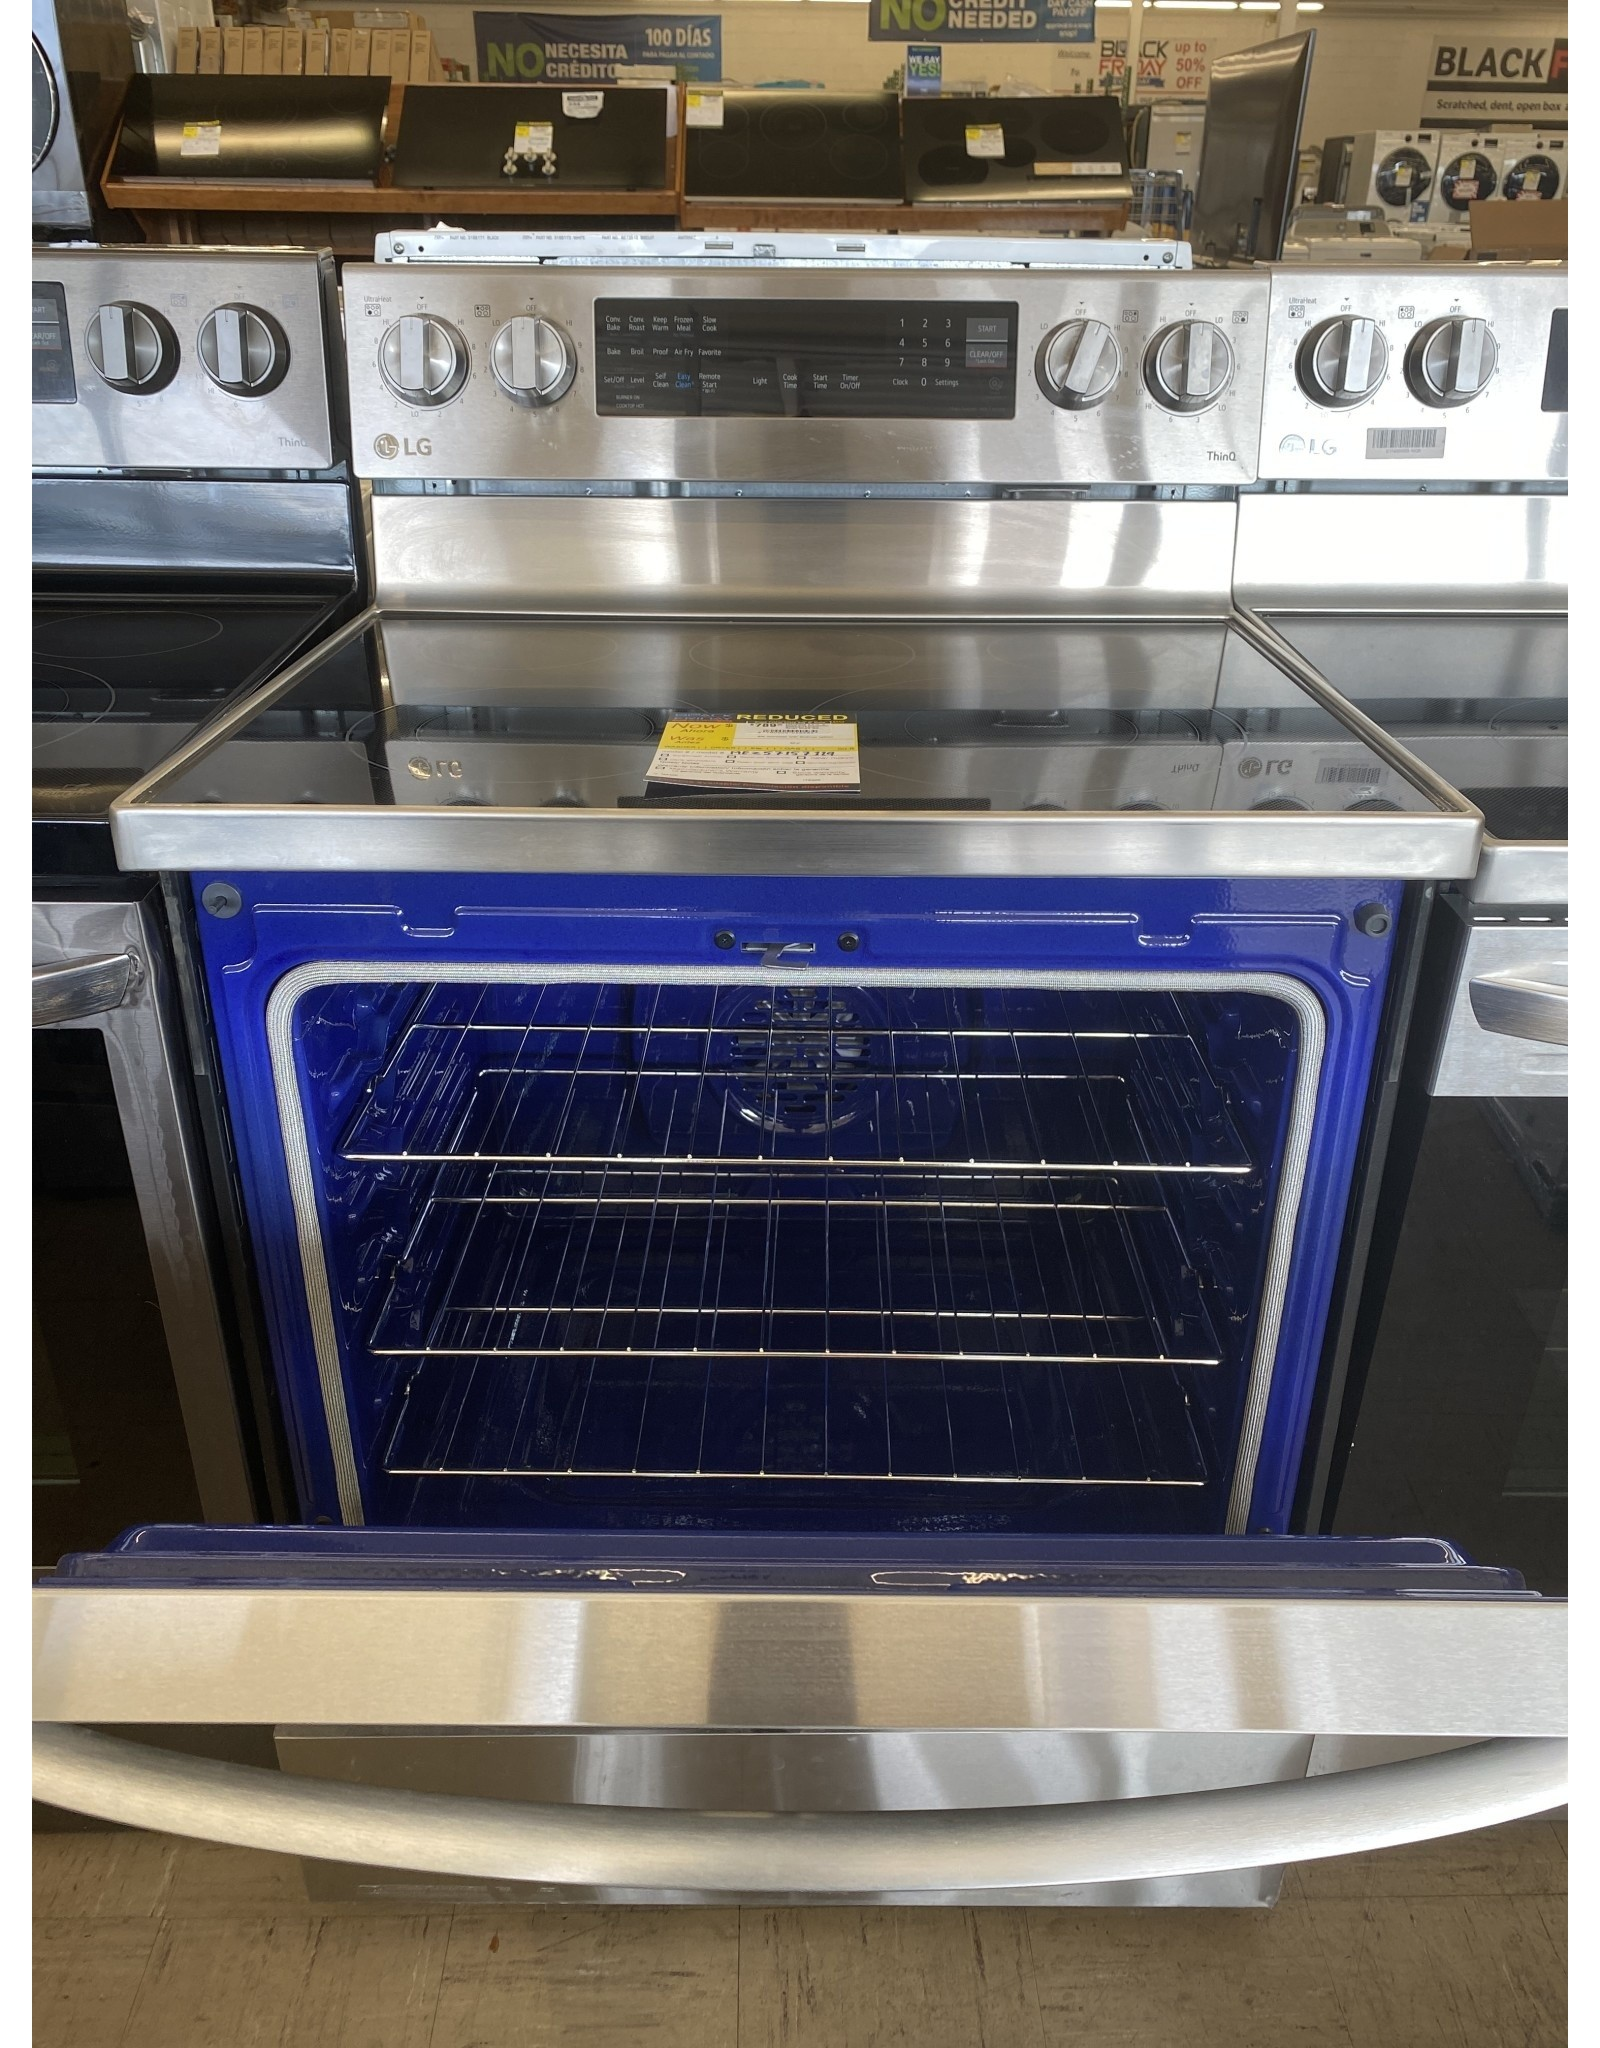 LG Electronics LREL6325F 6.3 cu. ft. Smart True Convection InstaView Electric Range Single Oven with Air Fry in Printproof Stainless Steel